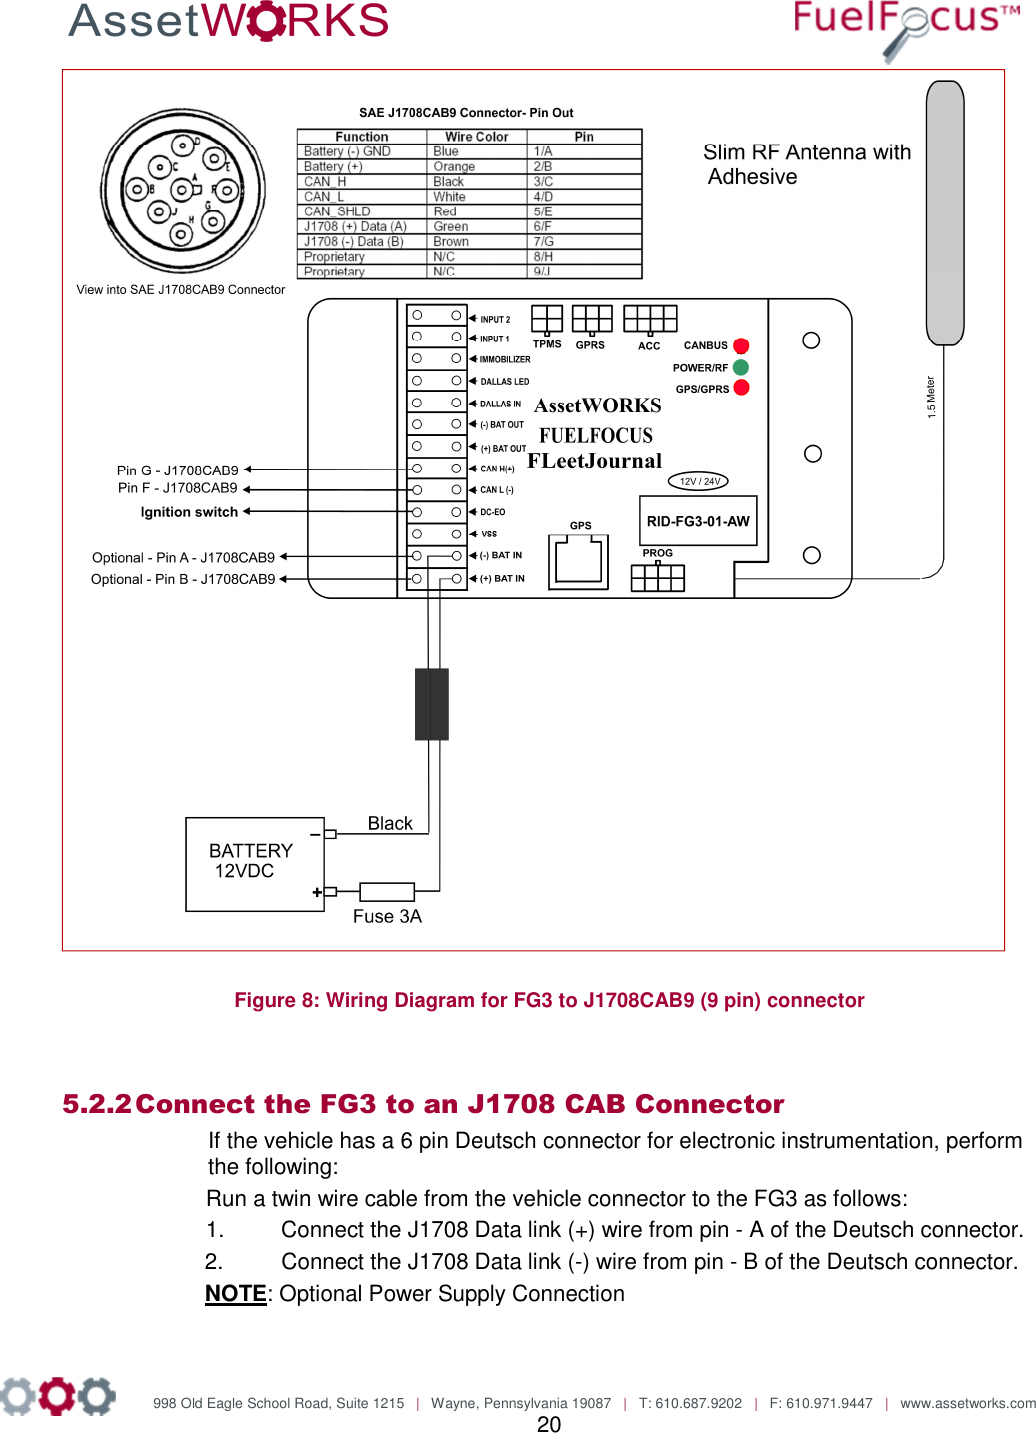 J1708 Connector Wiring Diagram - Home Wiring Diagrams on